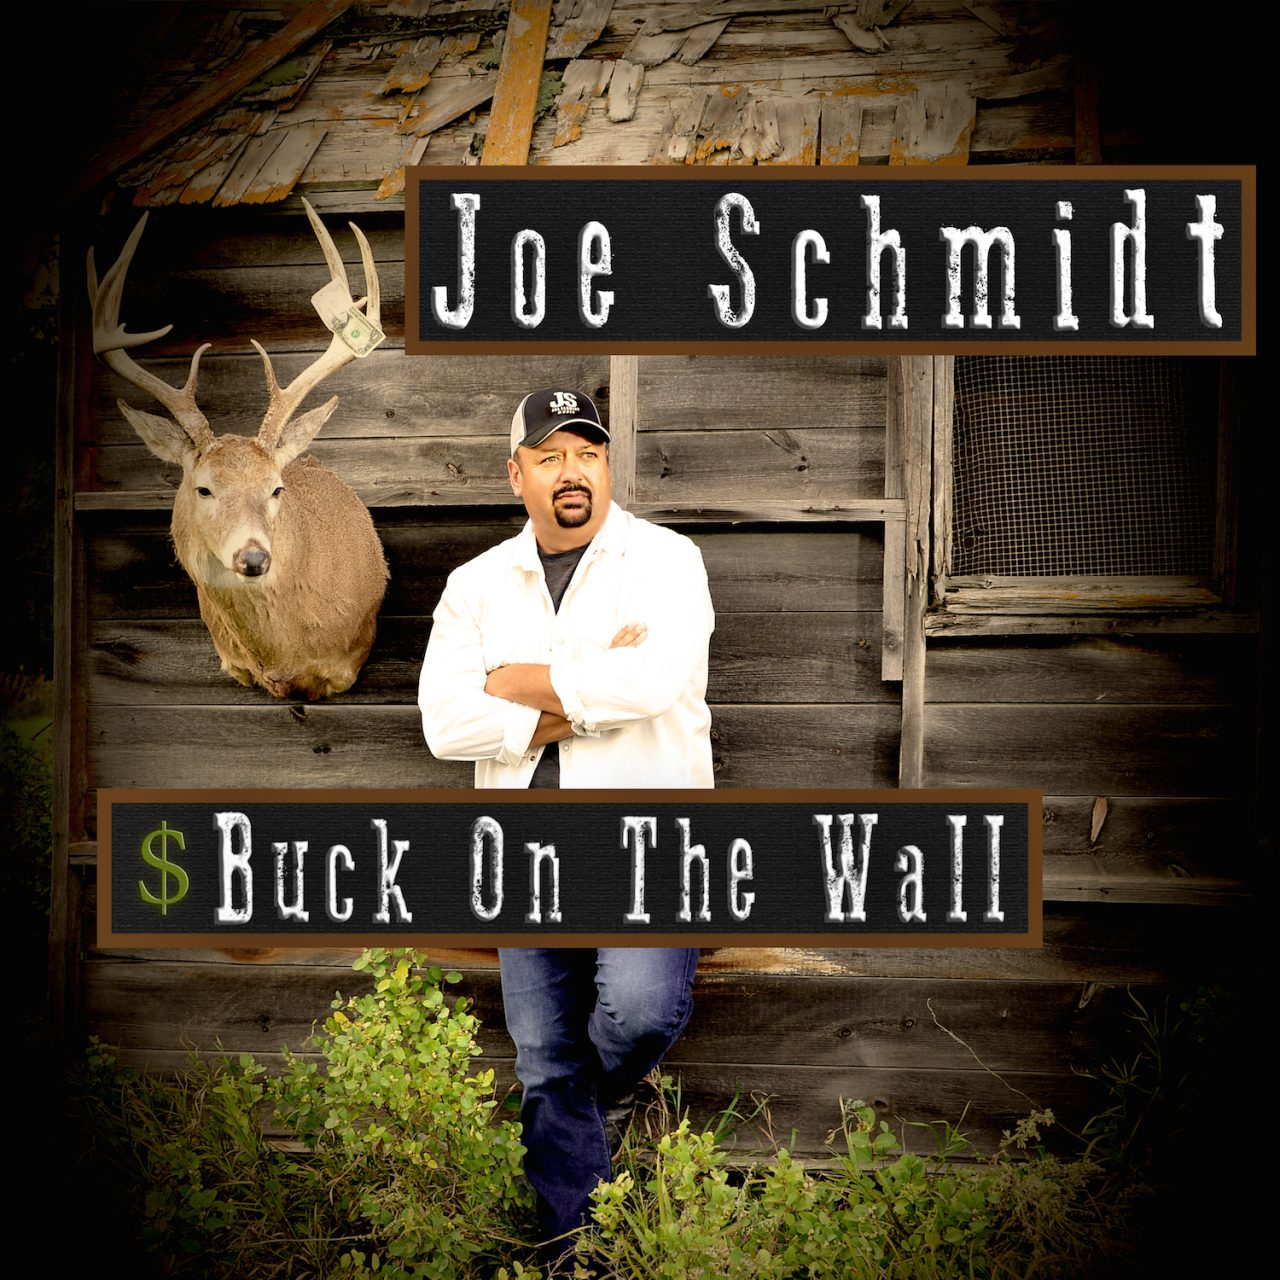 Joe Schmidt - Buck On The Wall